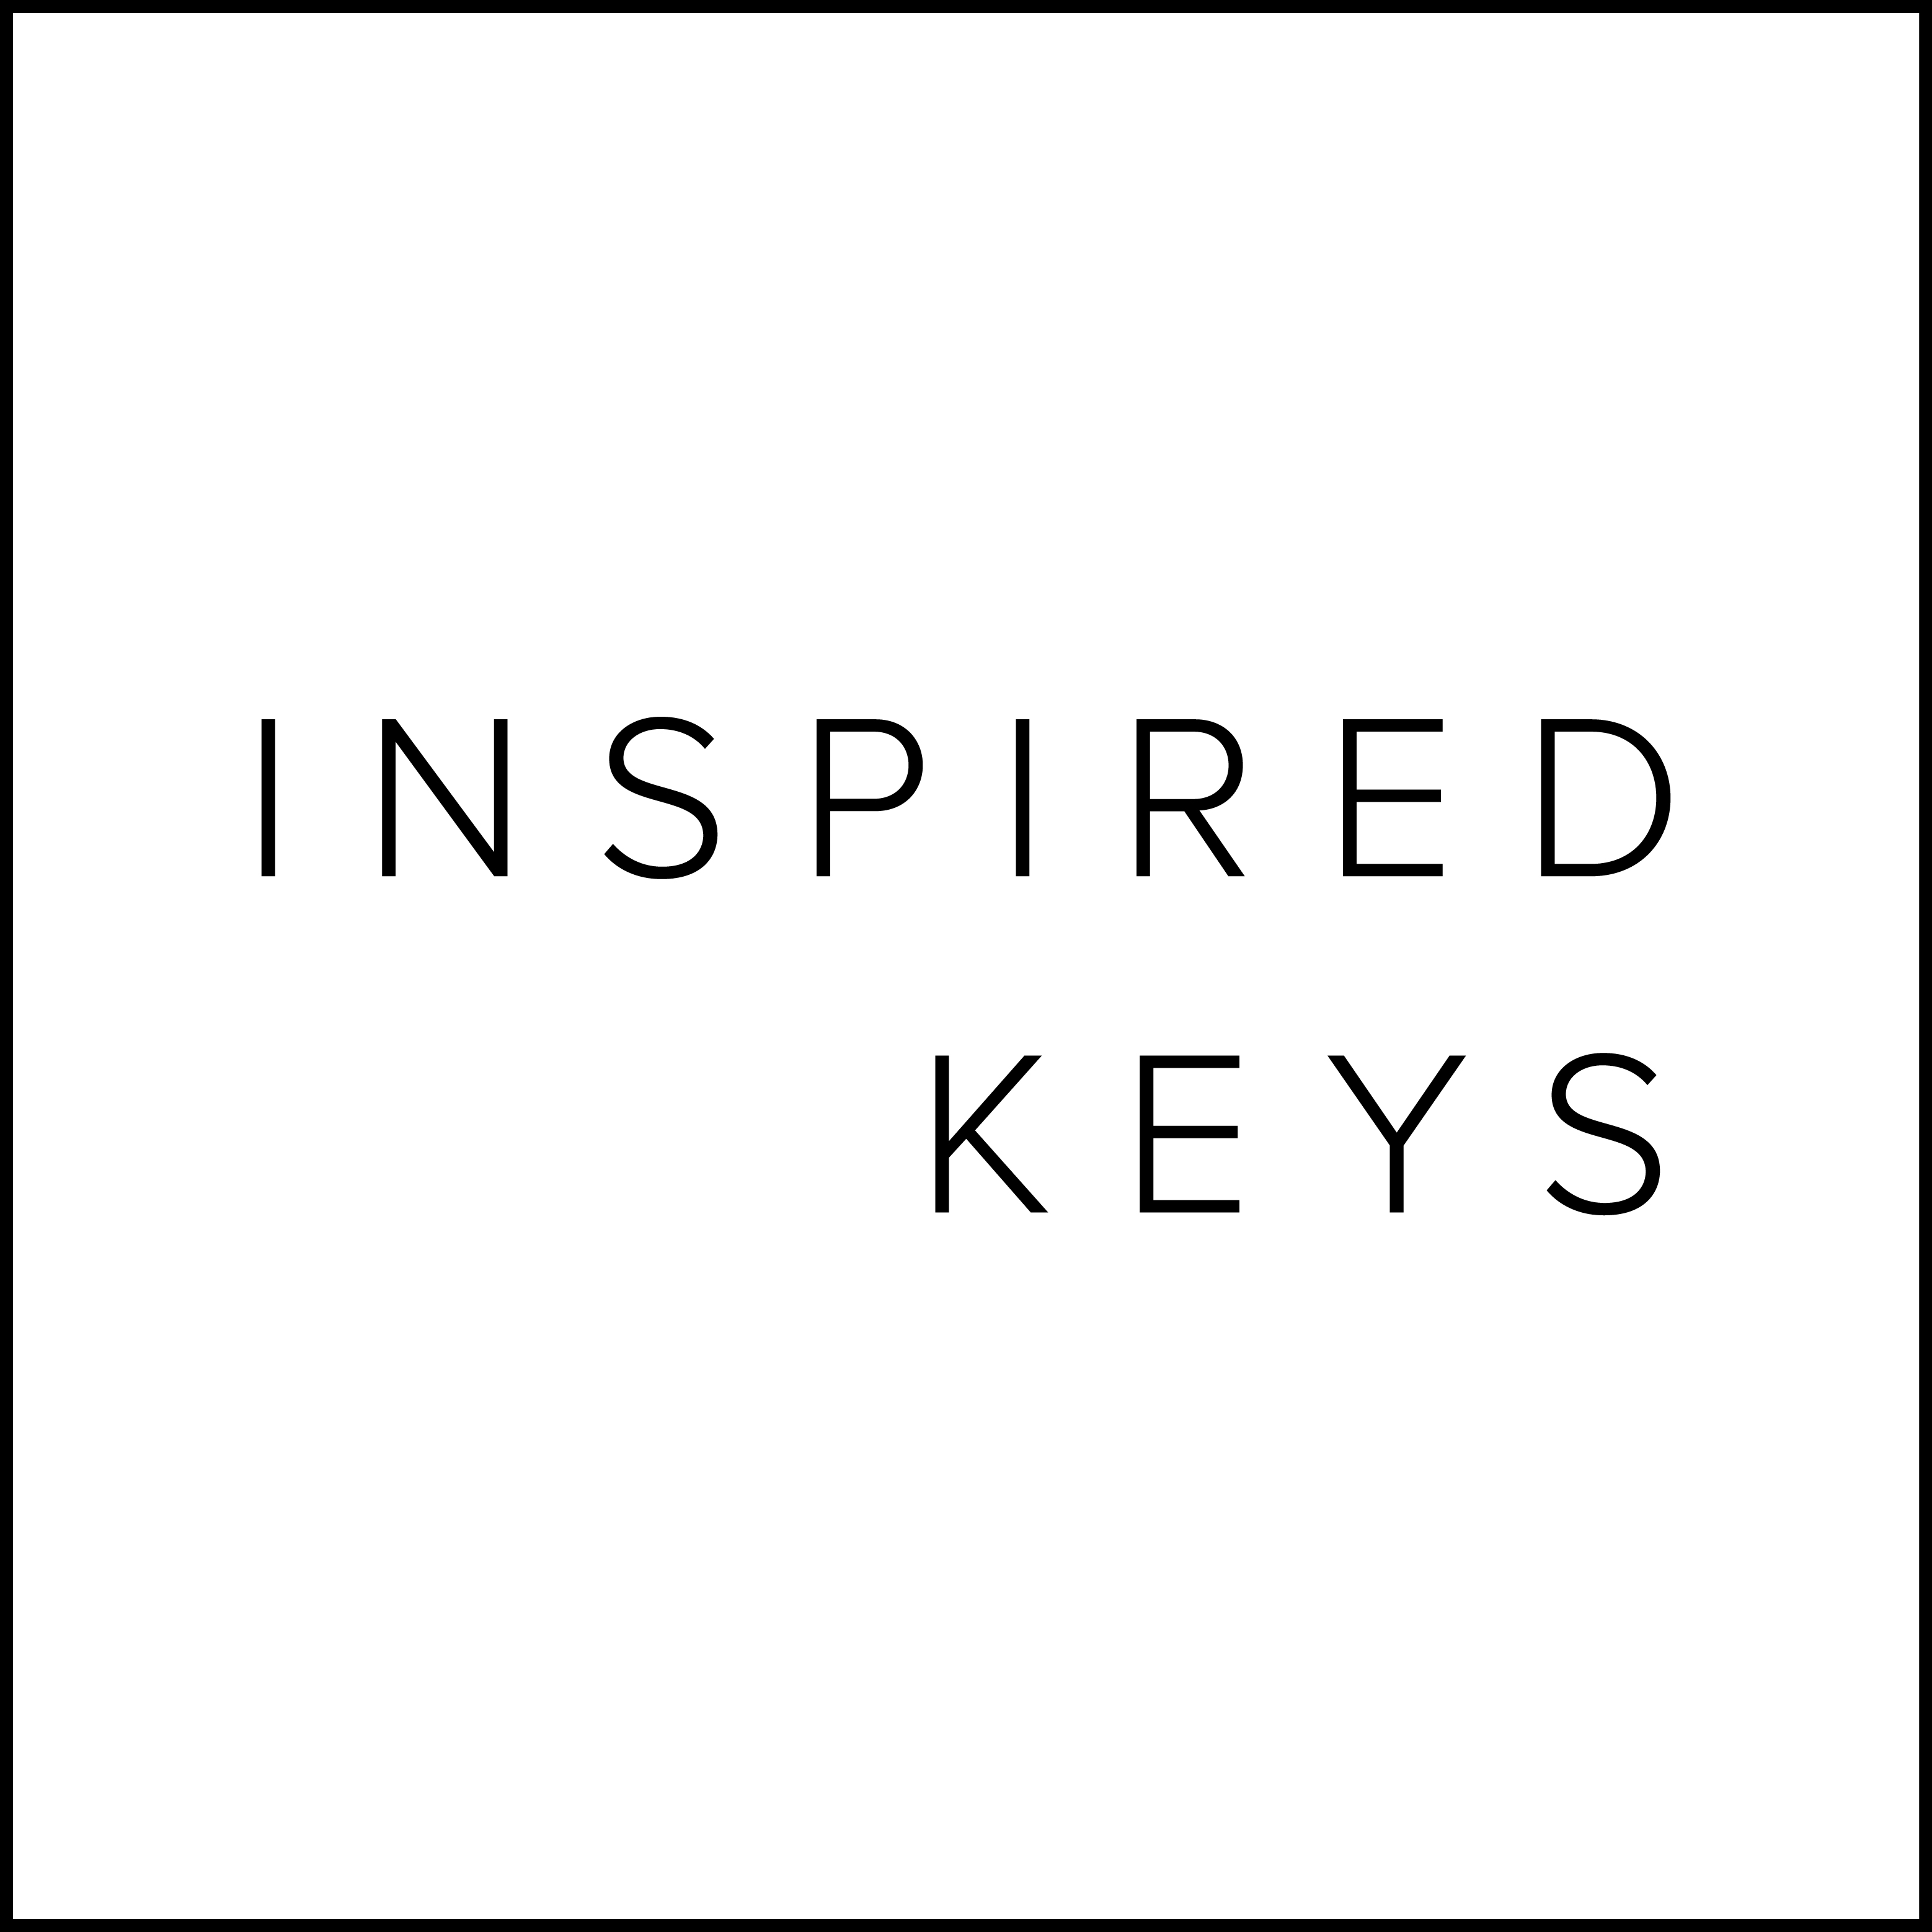 Archives inspired keys with sandra chen general contact member support hexwebz Image collections